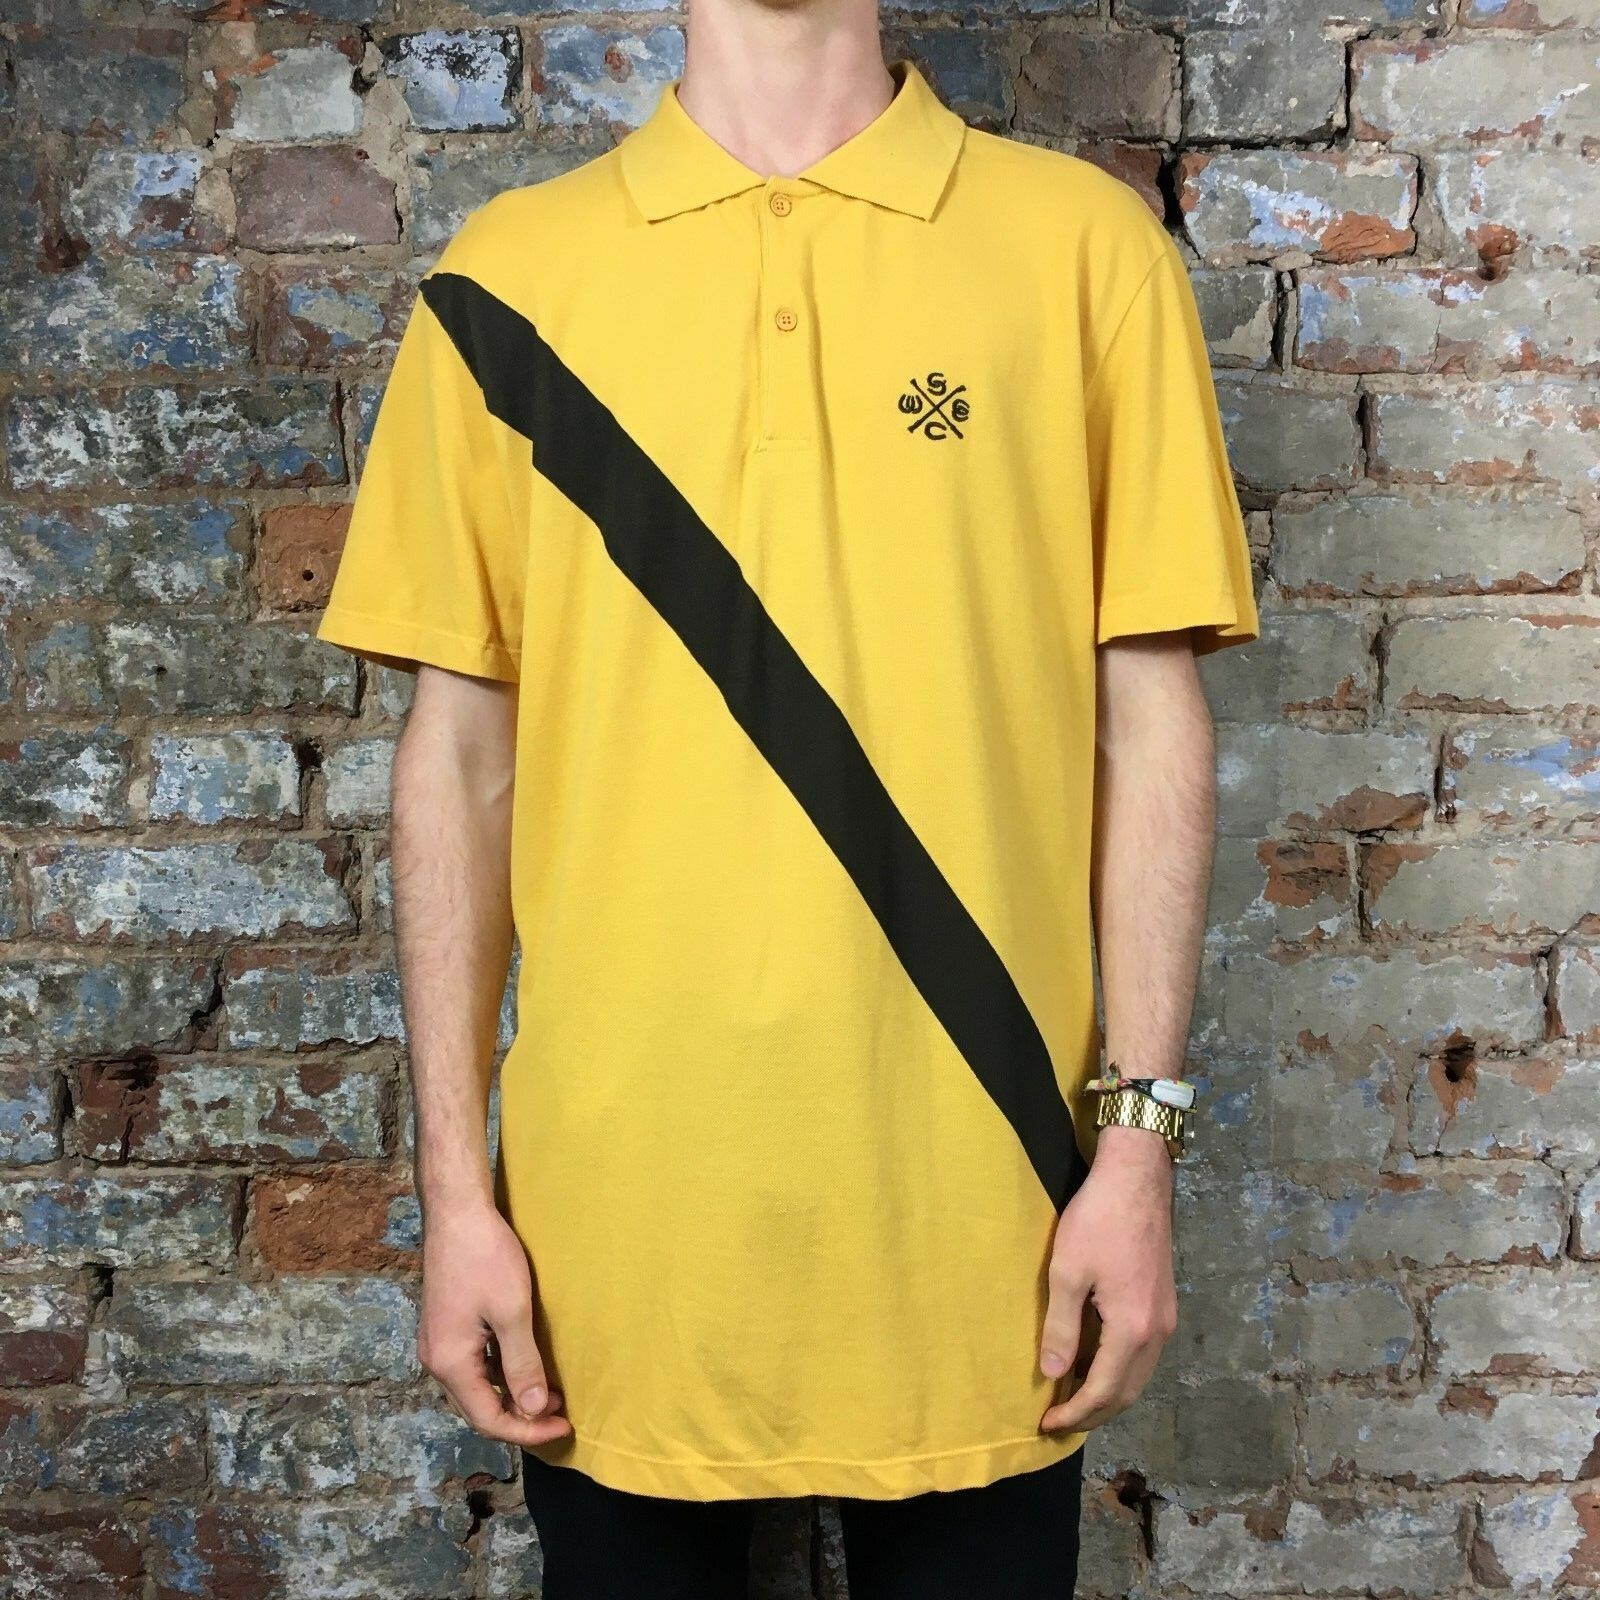 ccfa02001 Details about WESC Brent Short Sleeve Polo T-Shirt in Yellow Brand New in  size S